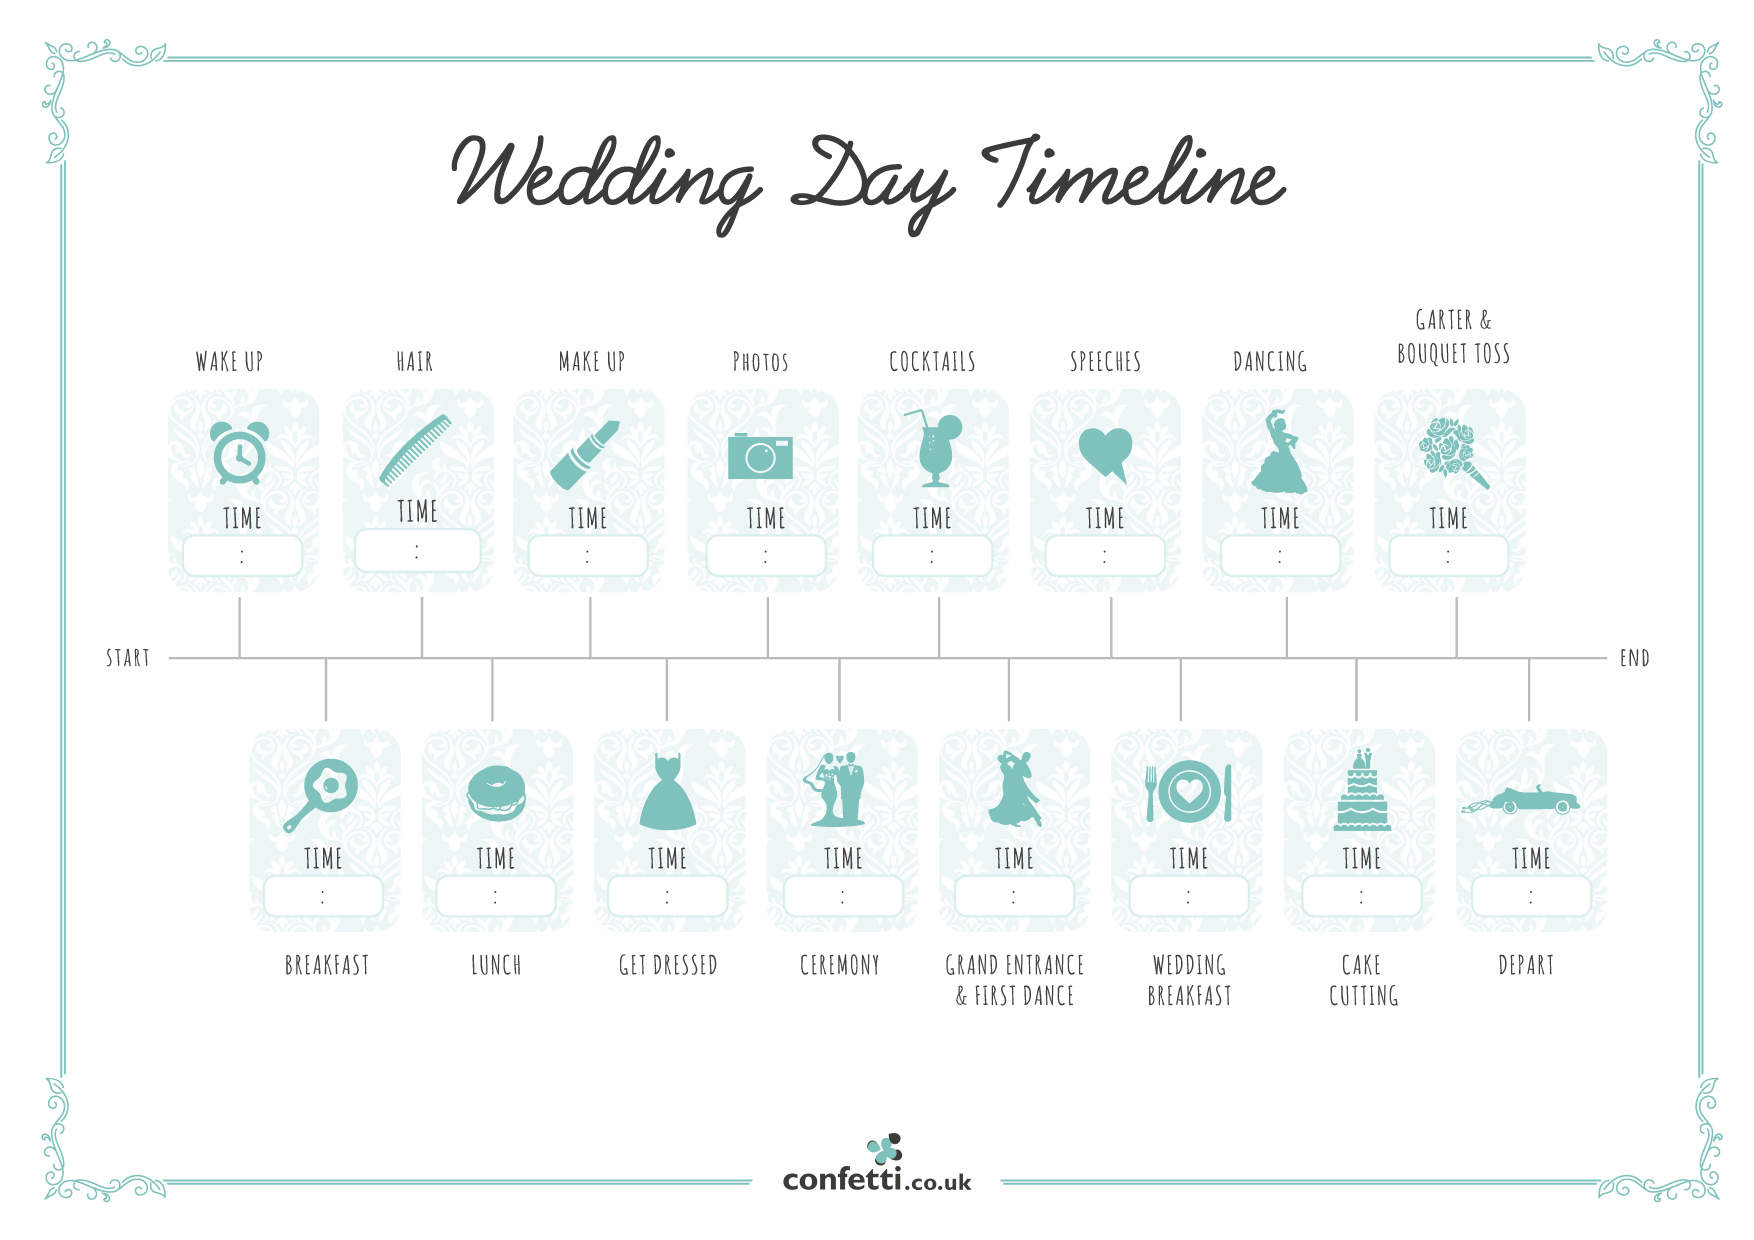 Wedding Day Timeline - Free Printable Guide - Confetti.co.uk